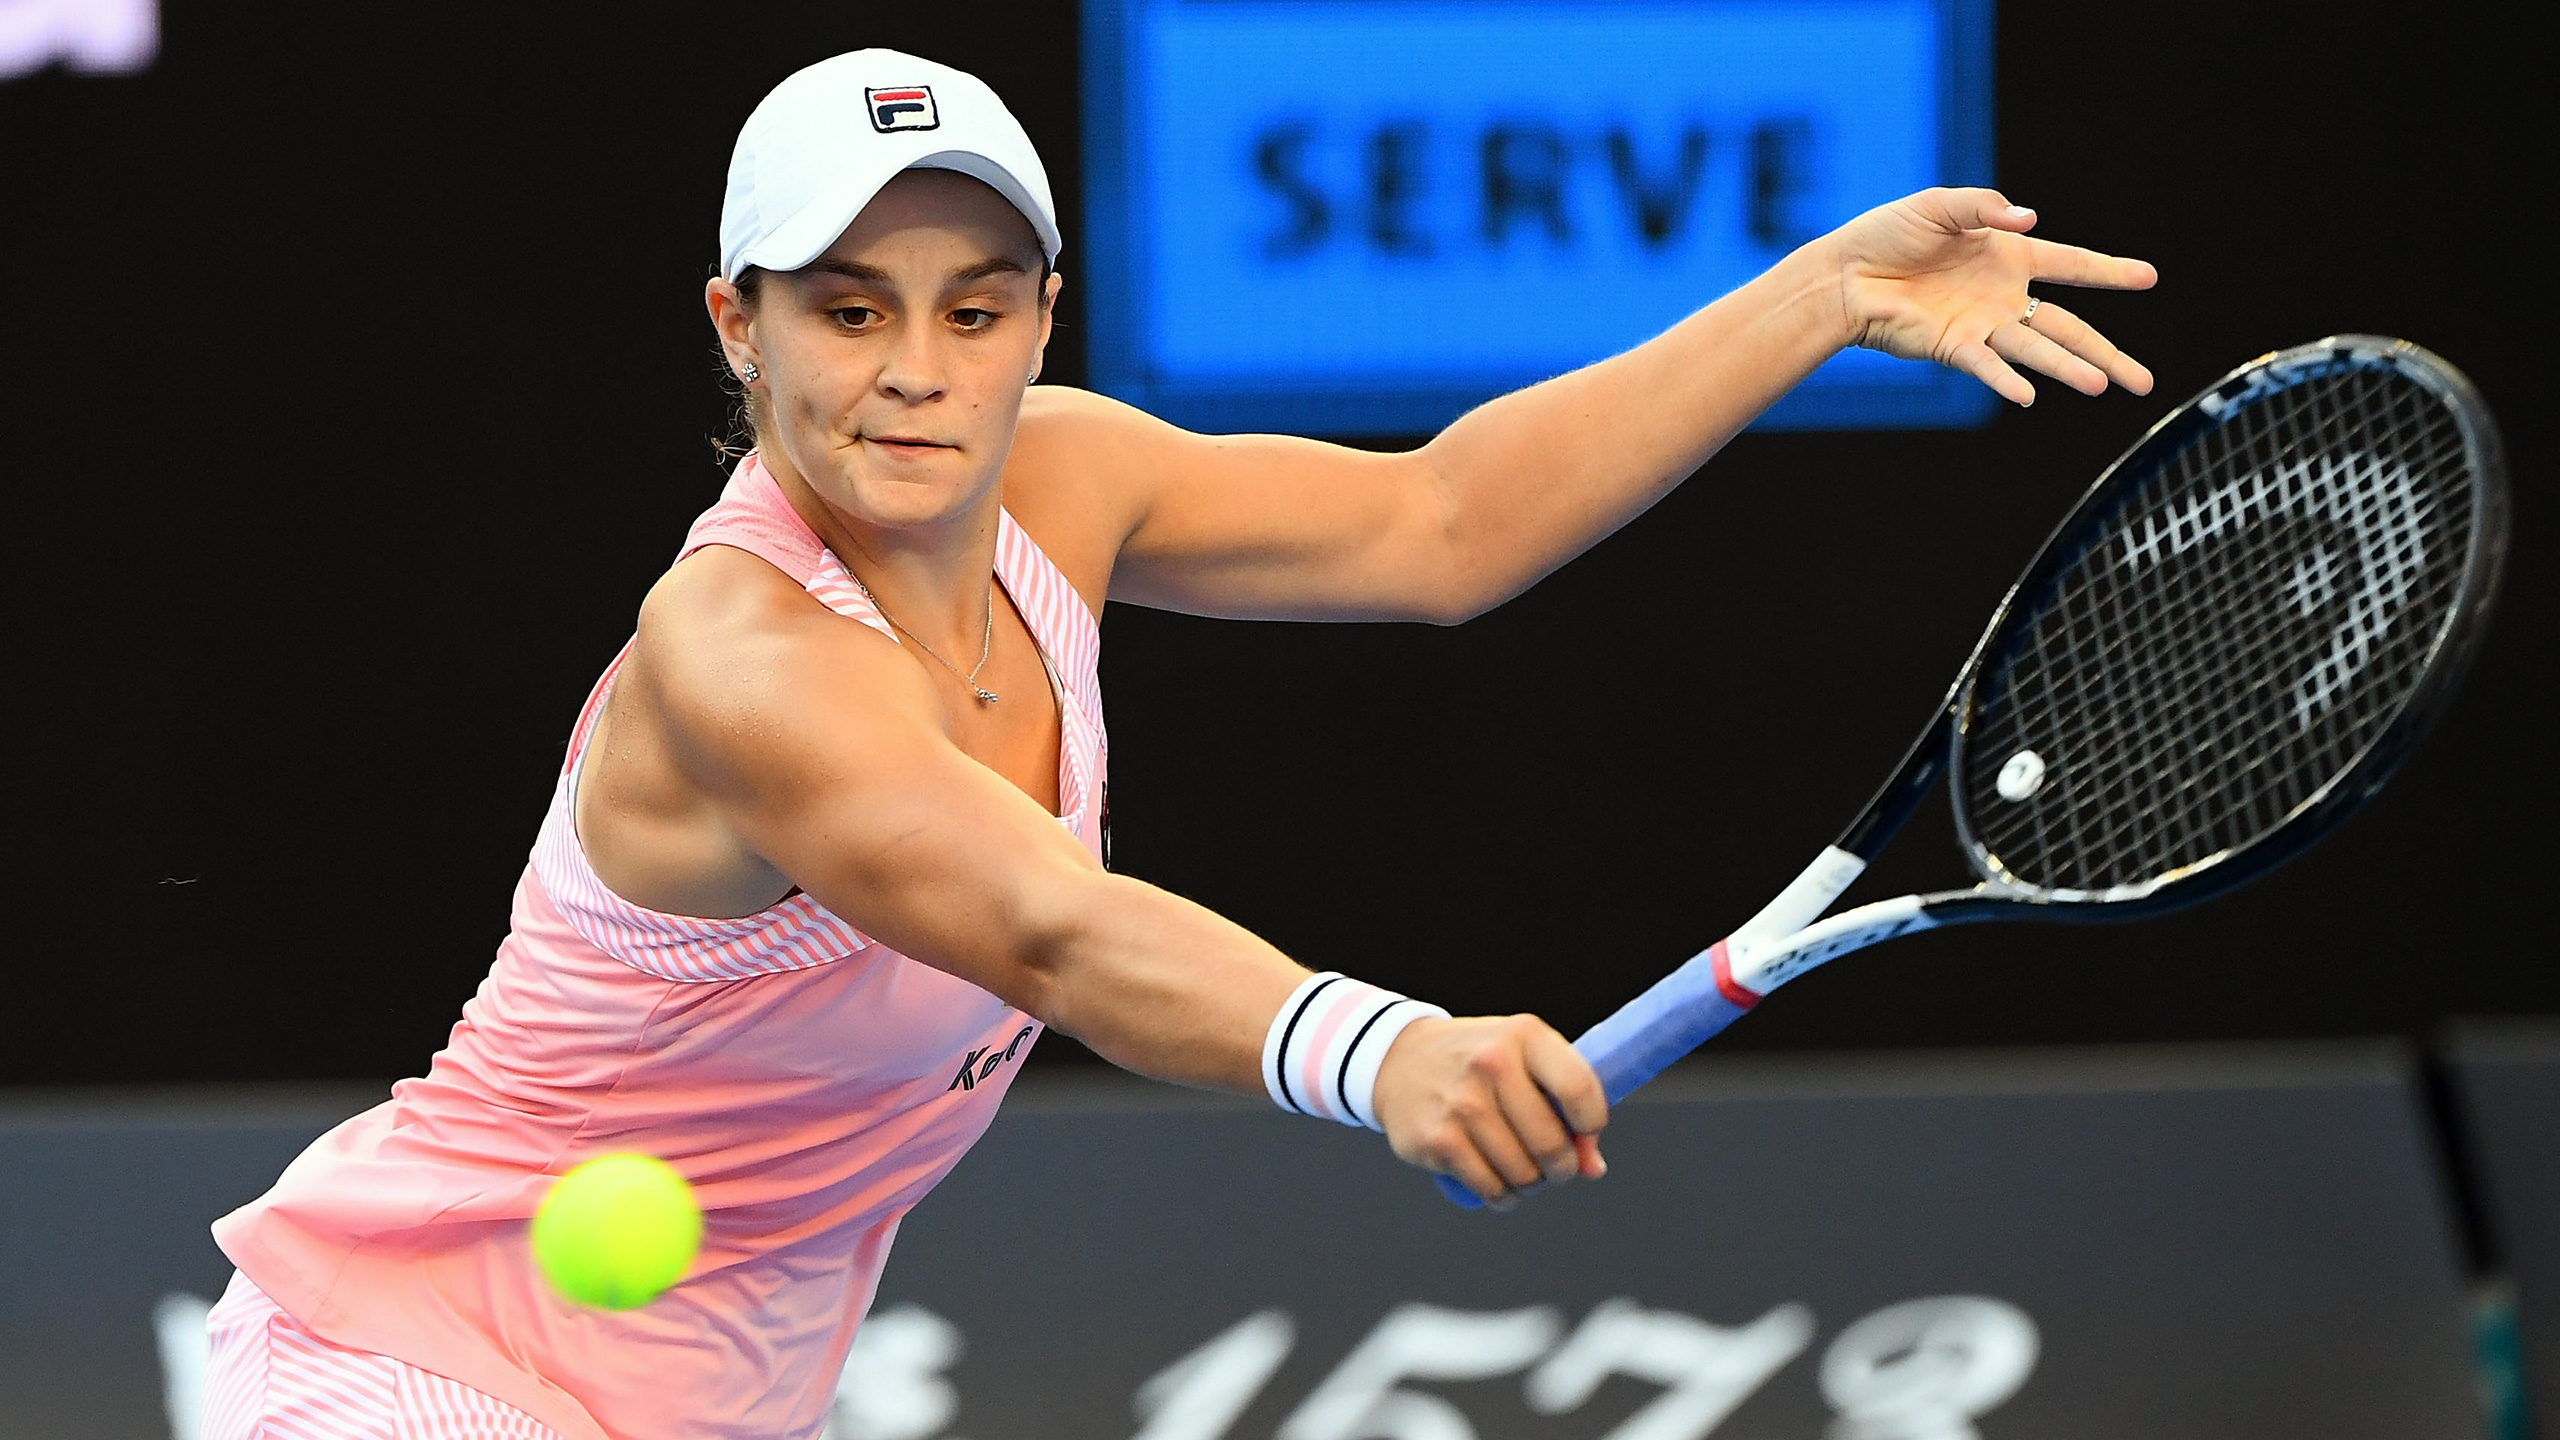 (15) Barty vs. Wang (Women's Second Round)